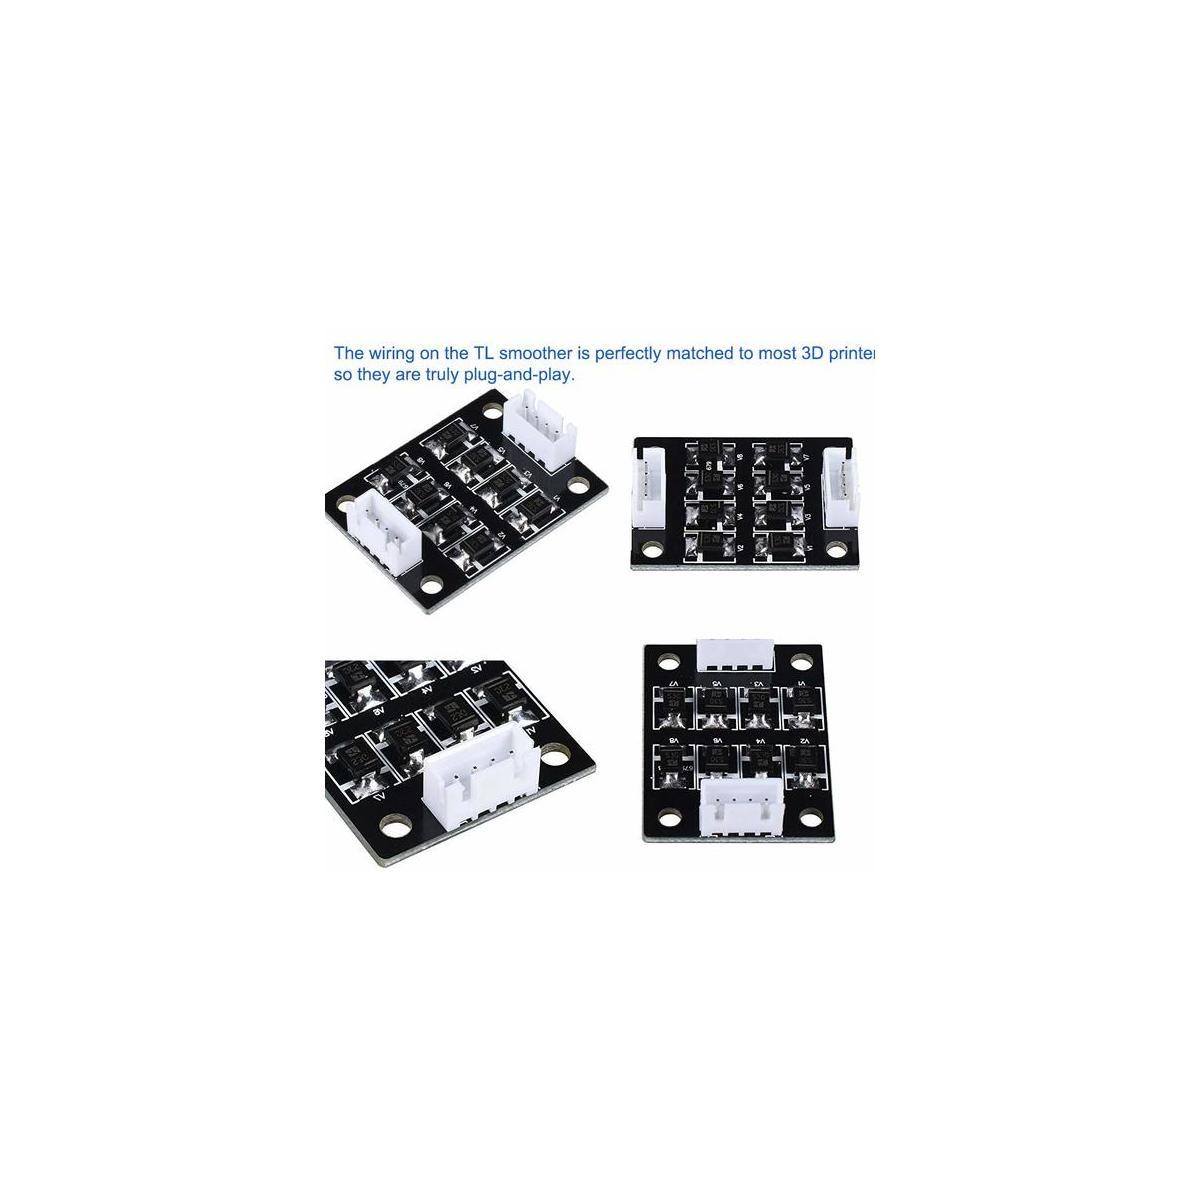 3pcs Upgrades Tl Smoother Addon Module Kit For 3d Printer